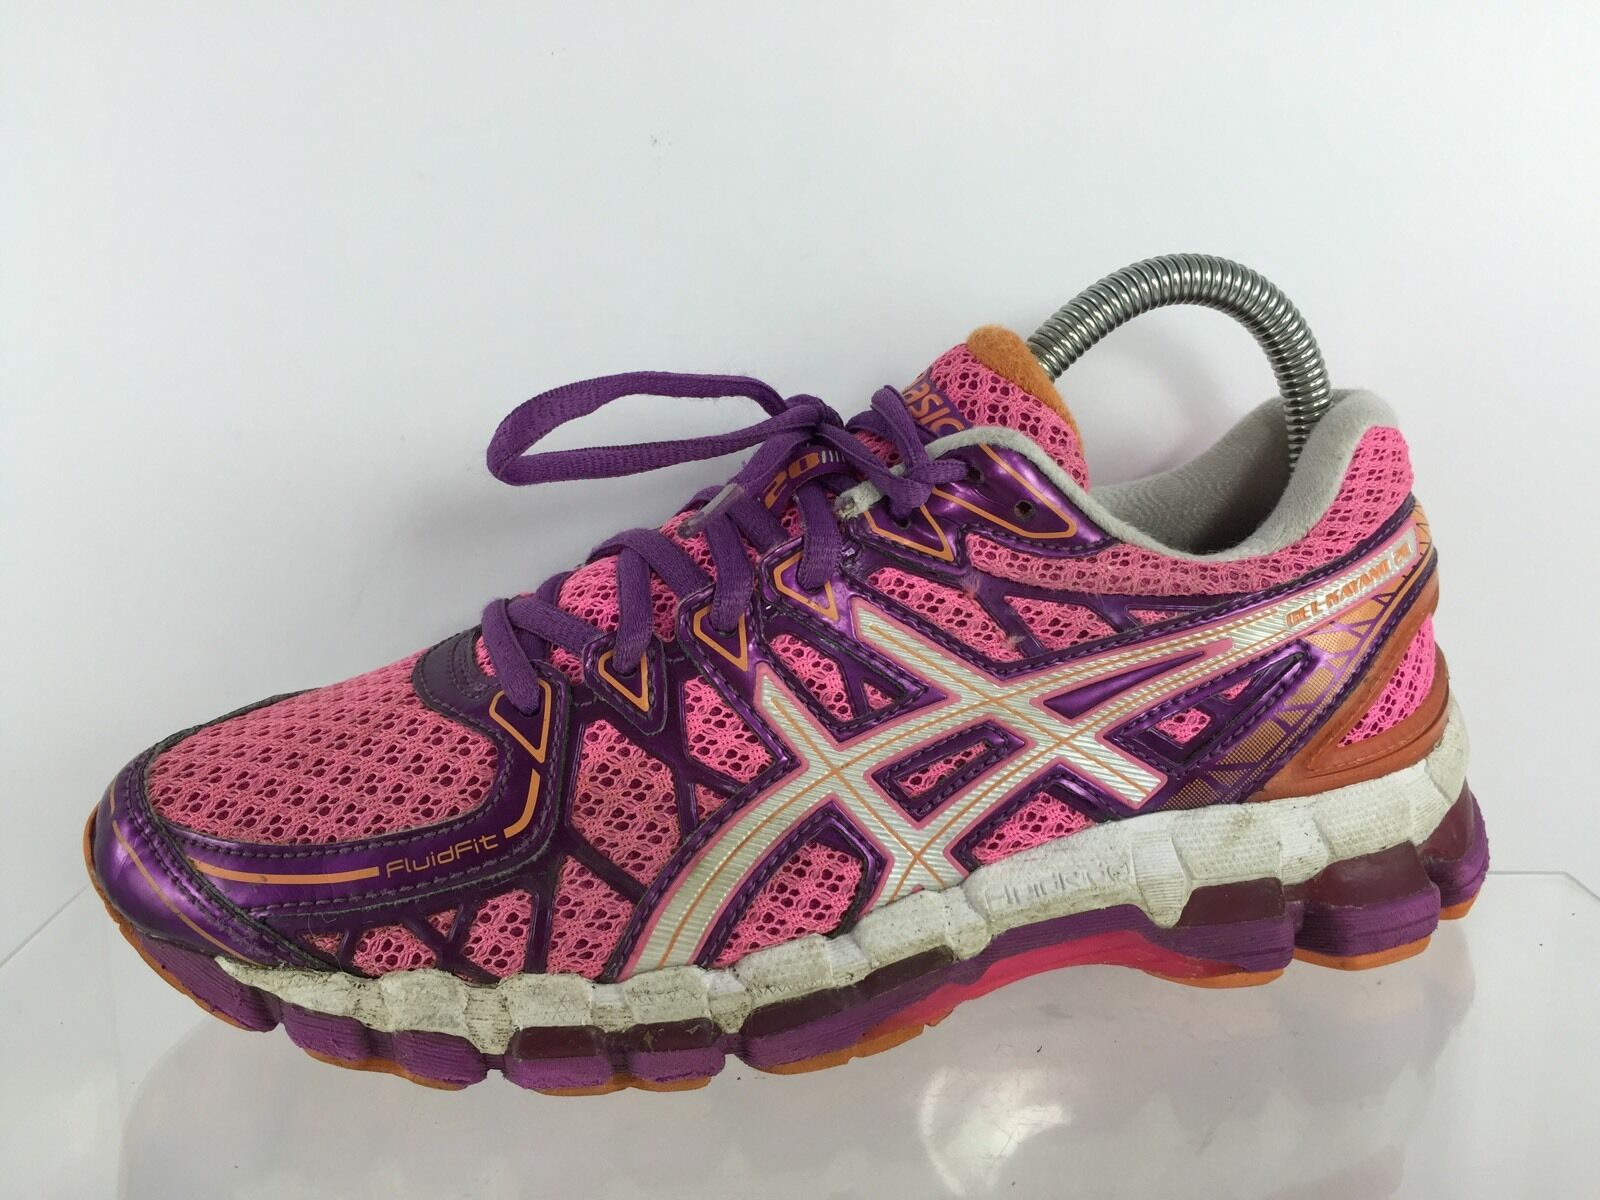 Asics Gel Kayano 20 Womens Pink Multi color Athletic shoes 7